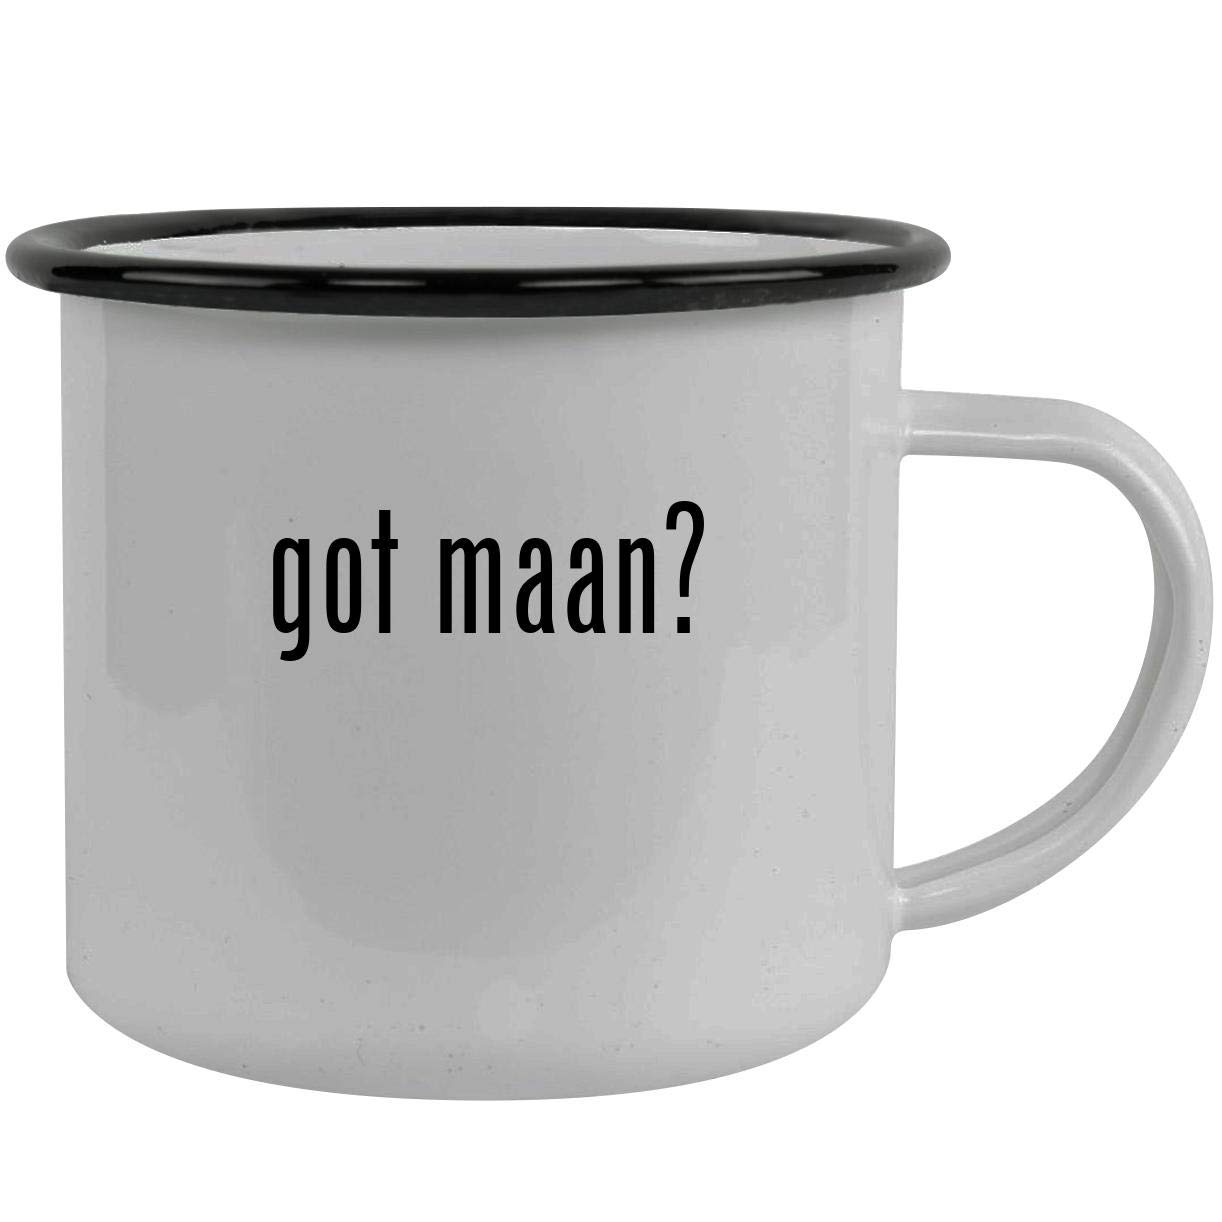 got maan? - Stainless Steel 12oz Camping Mug, Black by Molandra Products